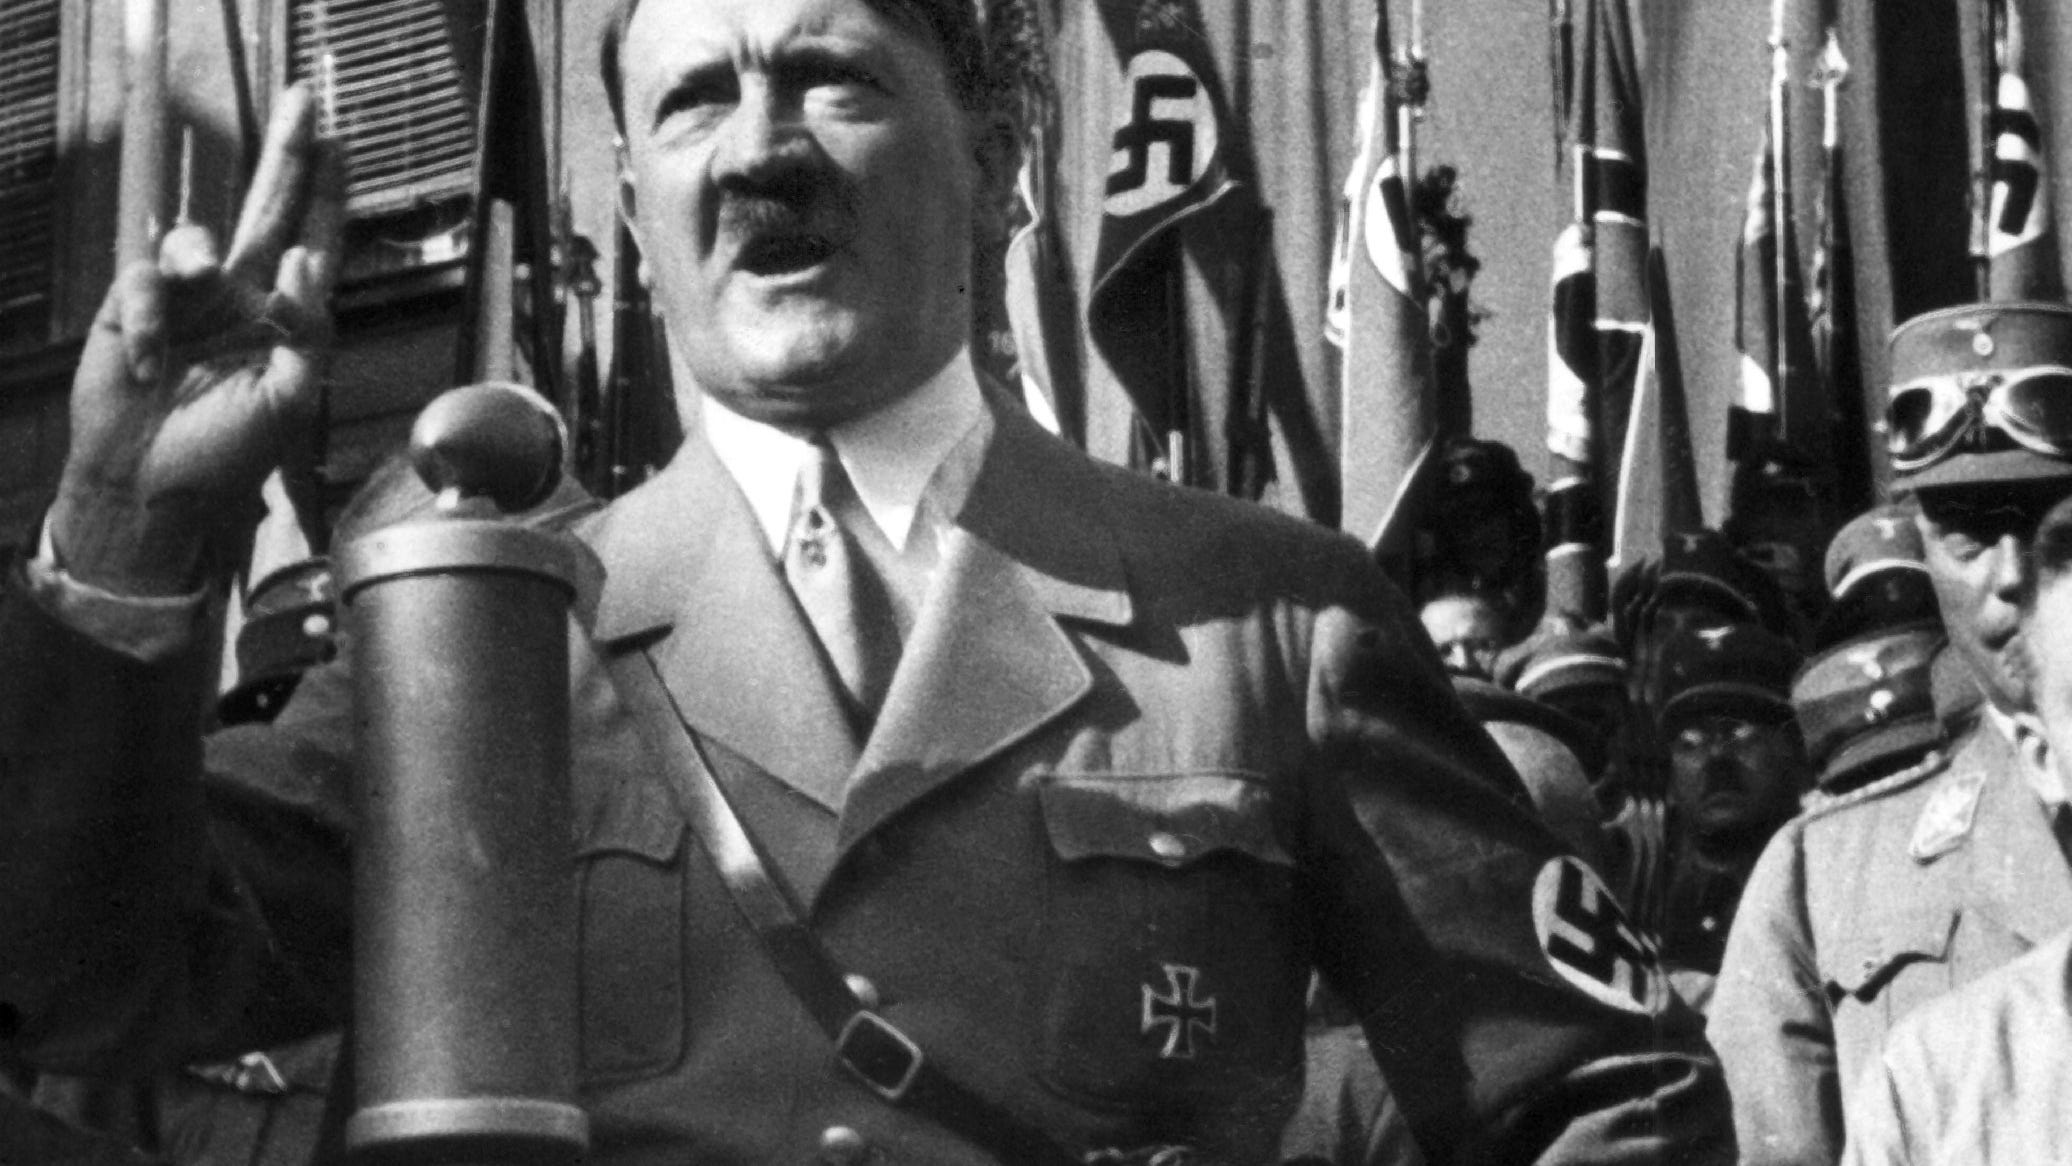 Hitler speeches sell at Munich auction despite objections